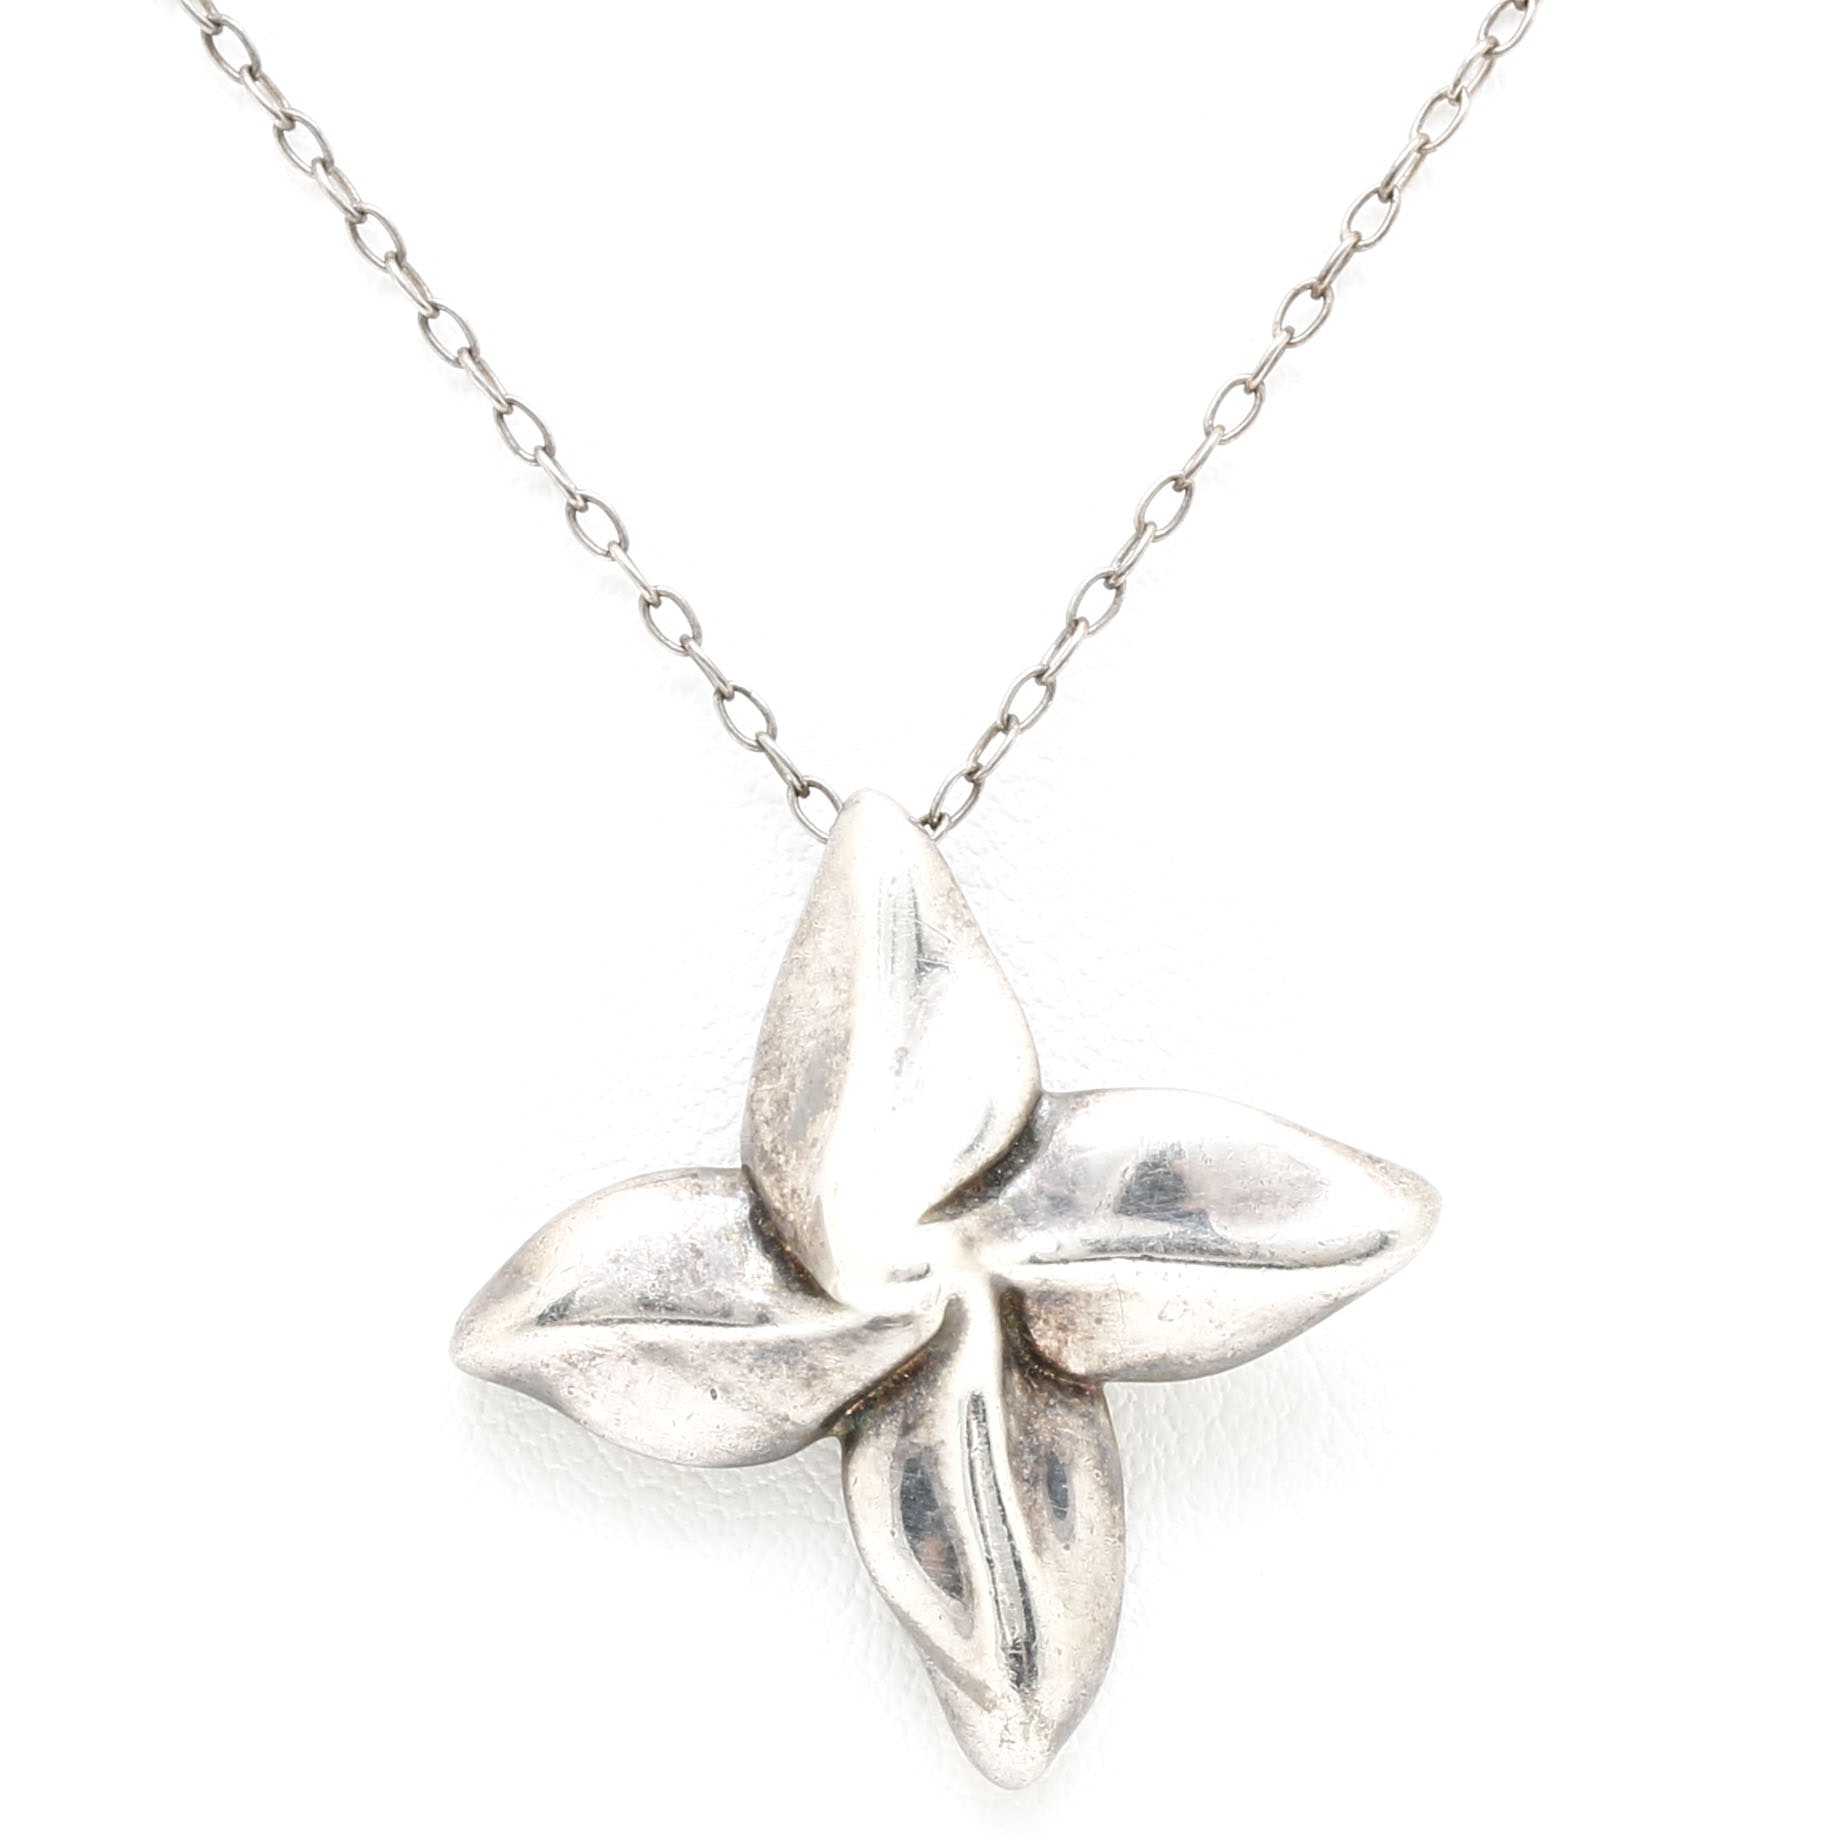 Tiffany & Co. Sterling Silver Floral Pendant Necklace